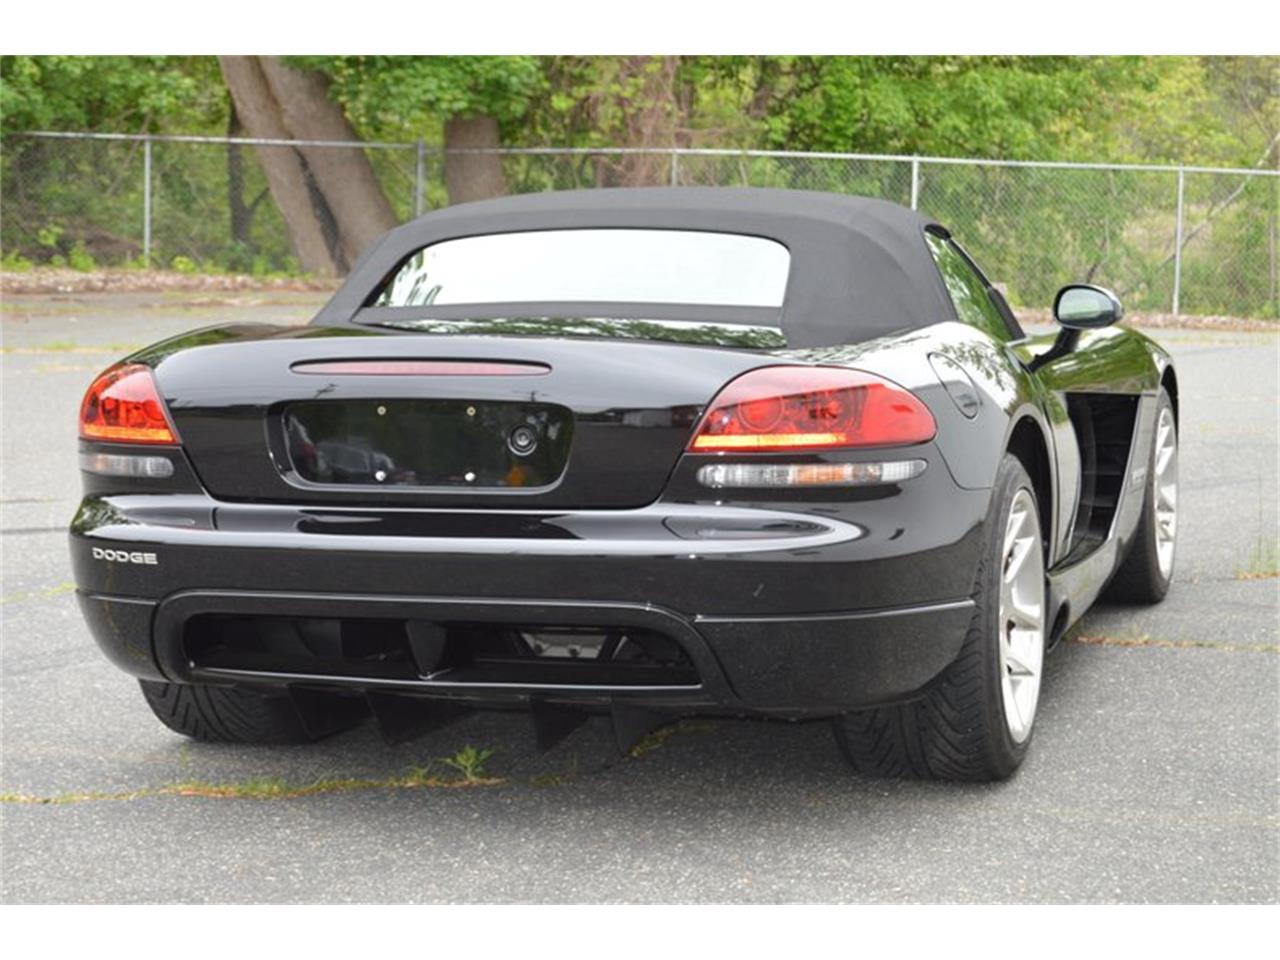 Large Picture of '04 Dodge Viper located in Springfield Massachusetts - $46,995.00 Offered by Mutual Enterprises Inc. - Q8EU